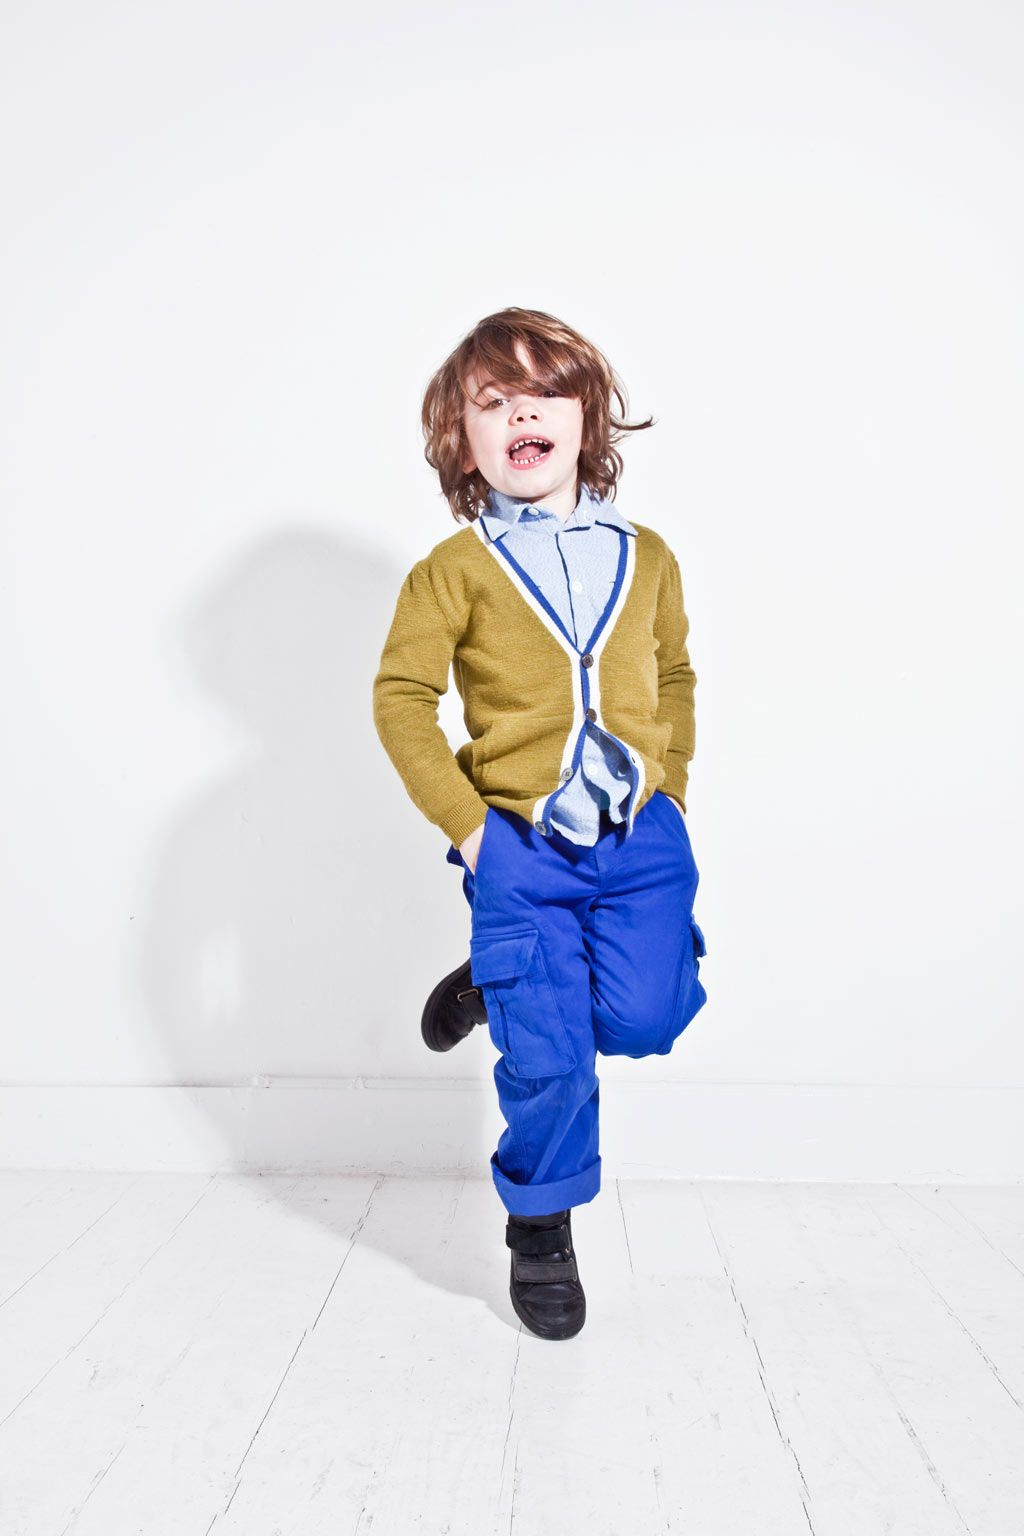 Morley kids ~ fall 2011 looks just as fabulous as ss2012